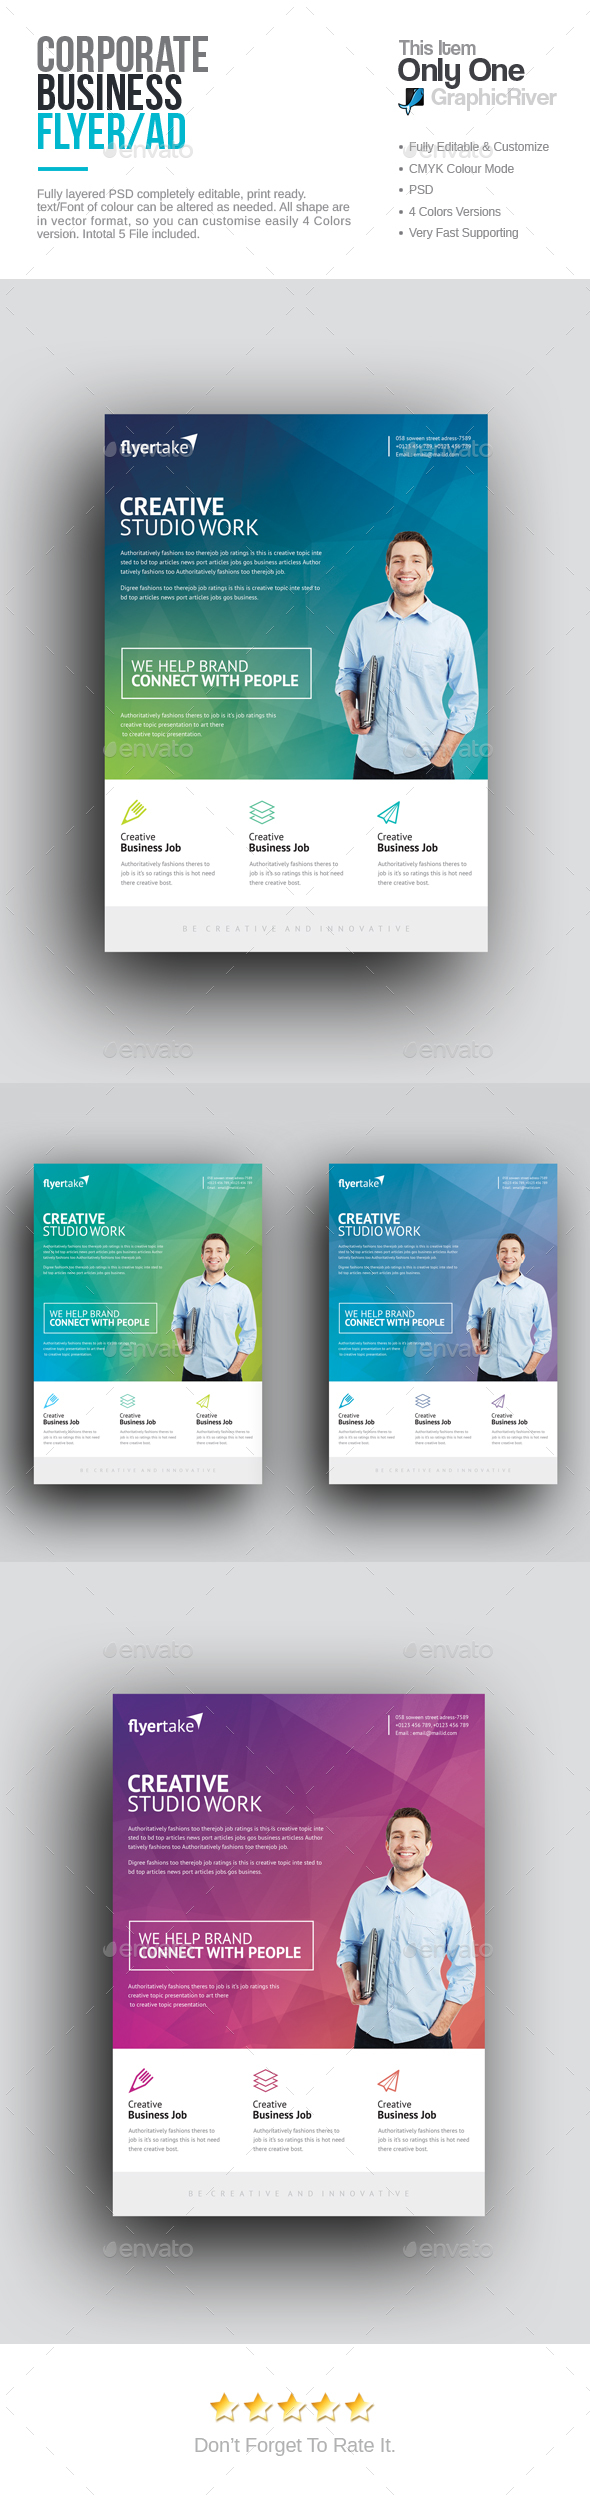 Corporate Flyer  Flyer Template Photoshop And Adobe Photoshop